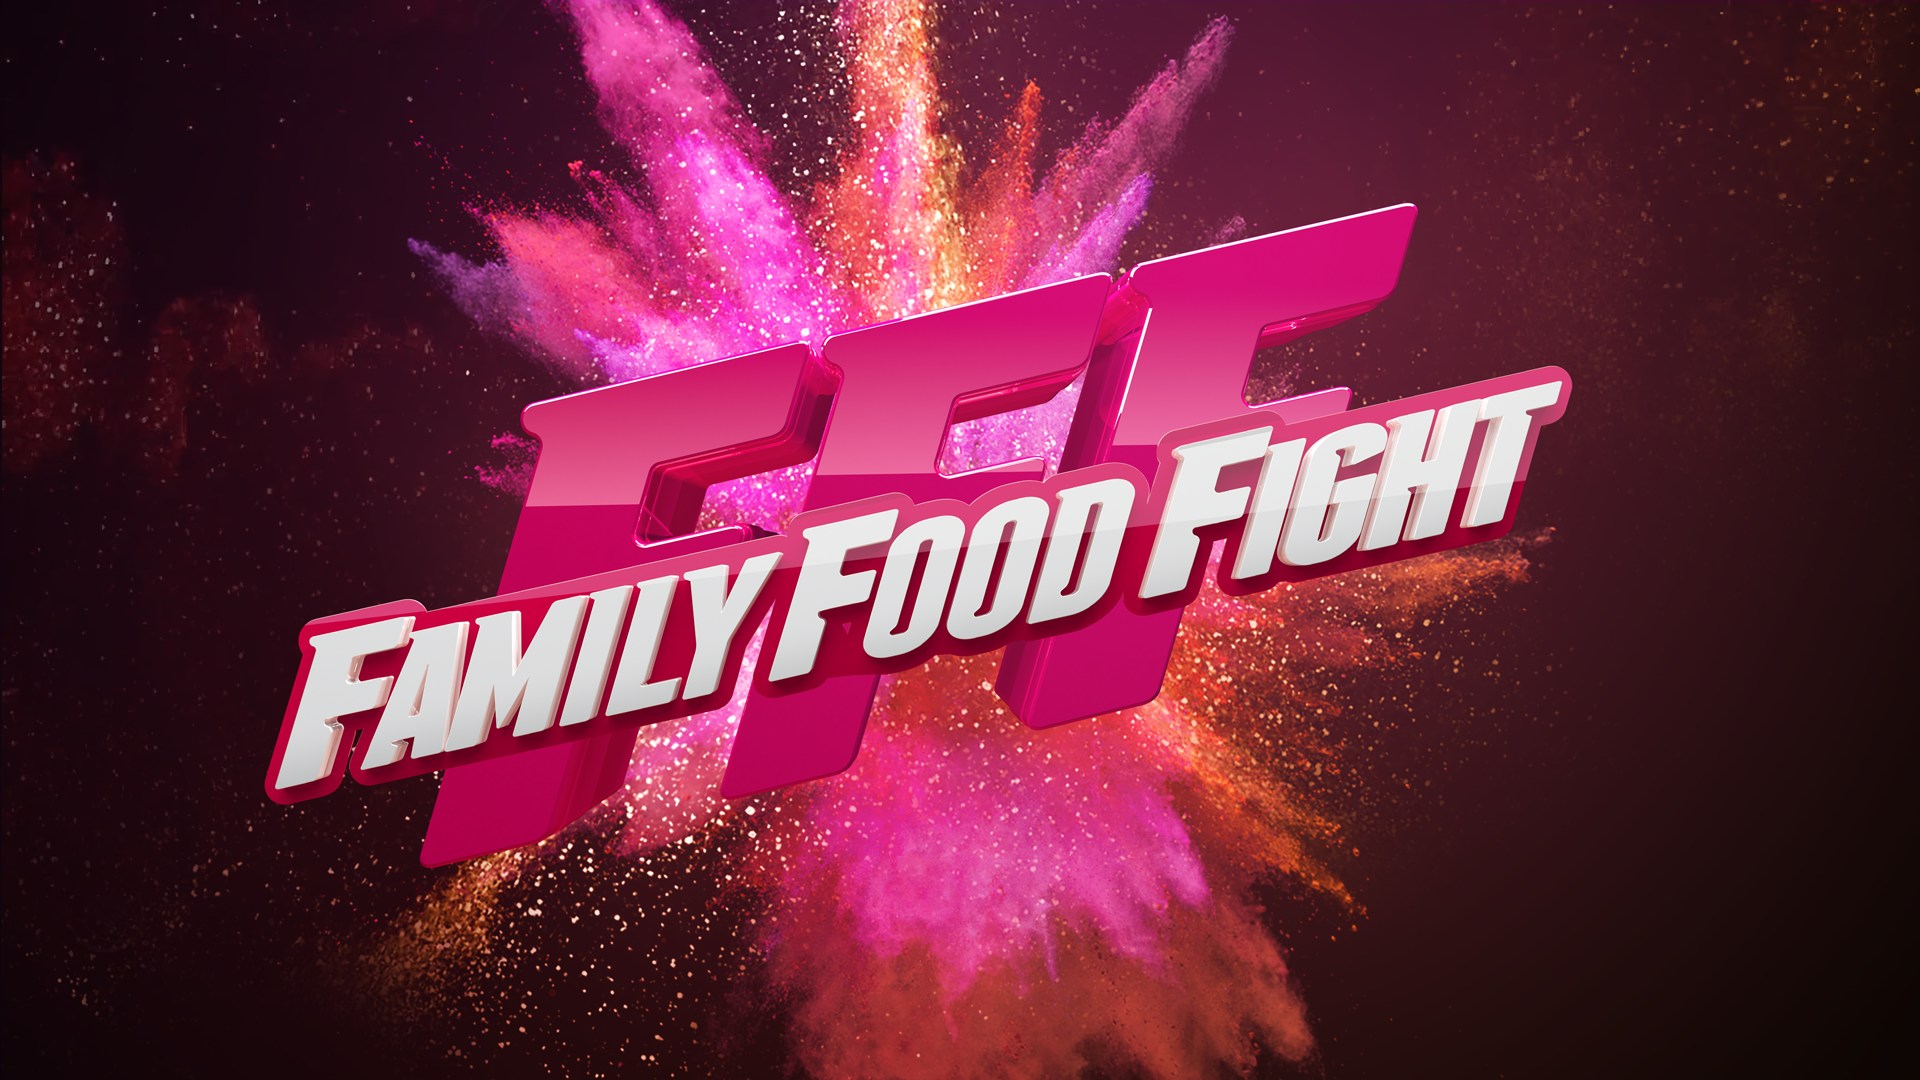 Endemol: Family Food Fight